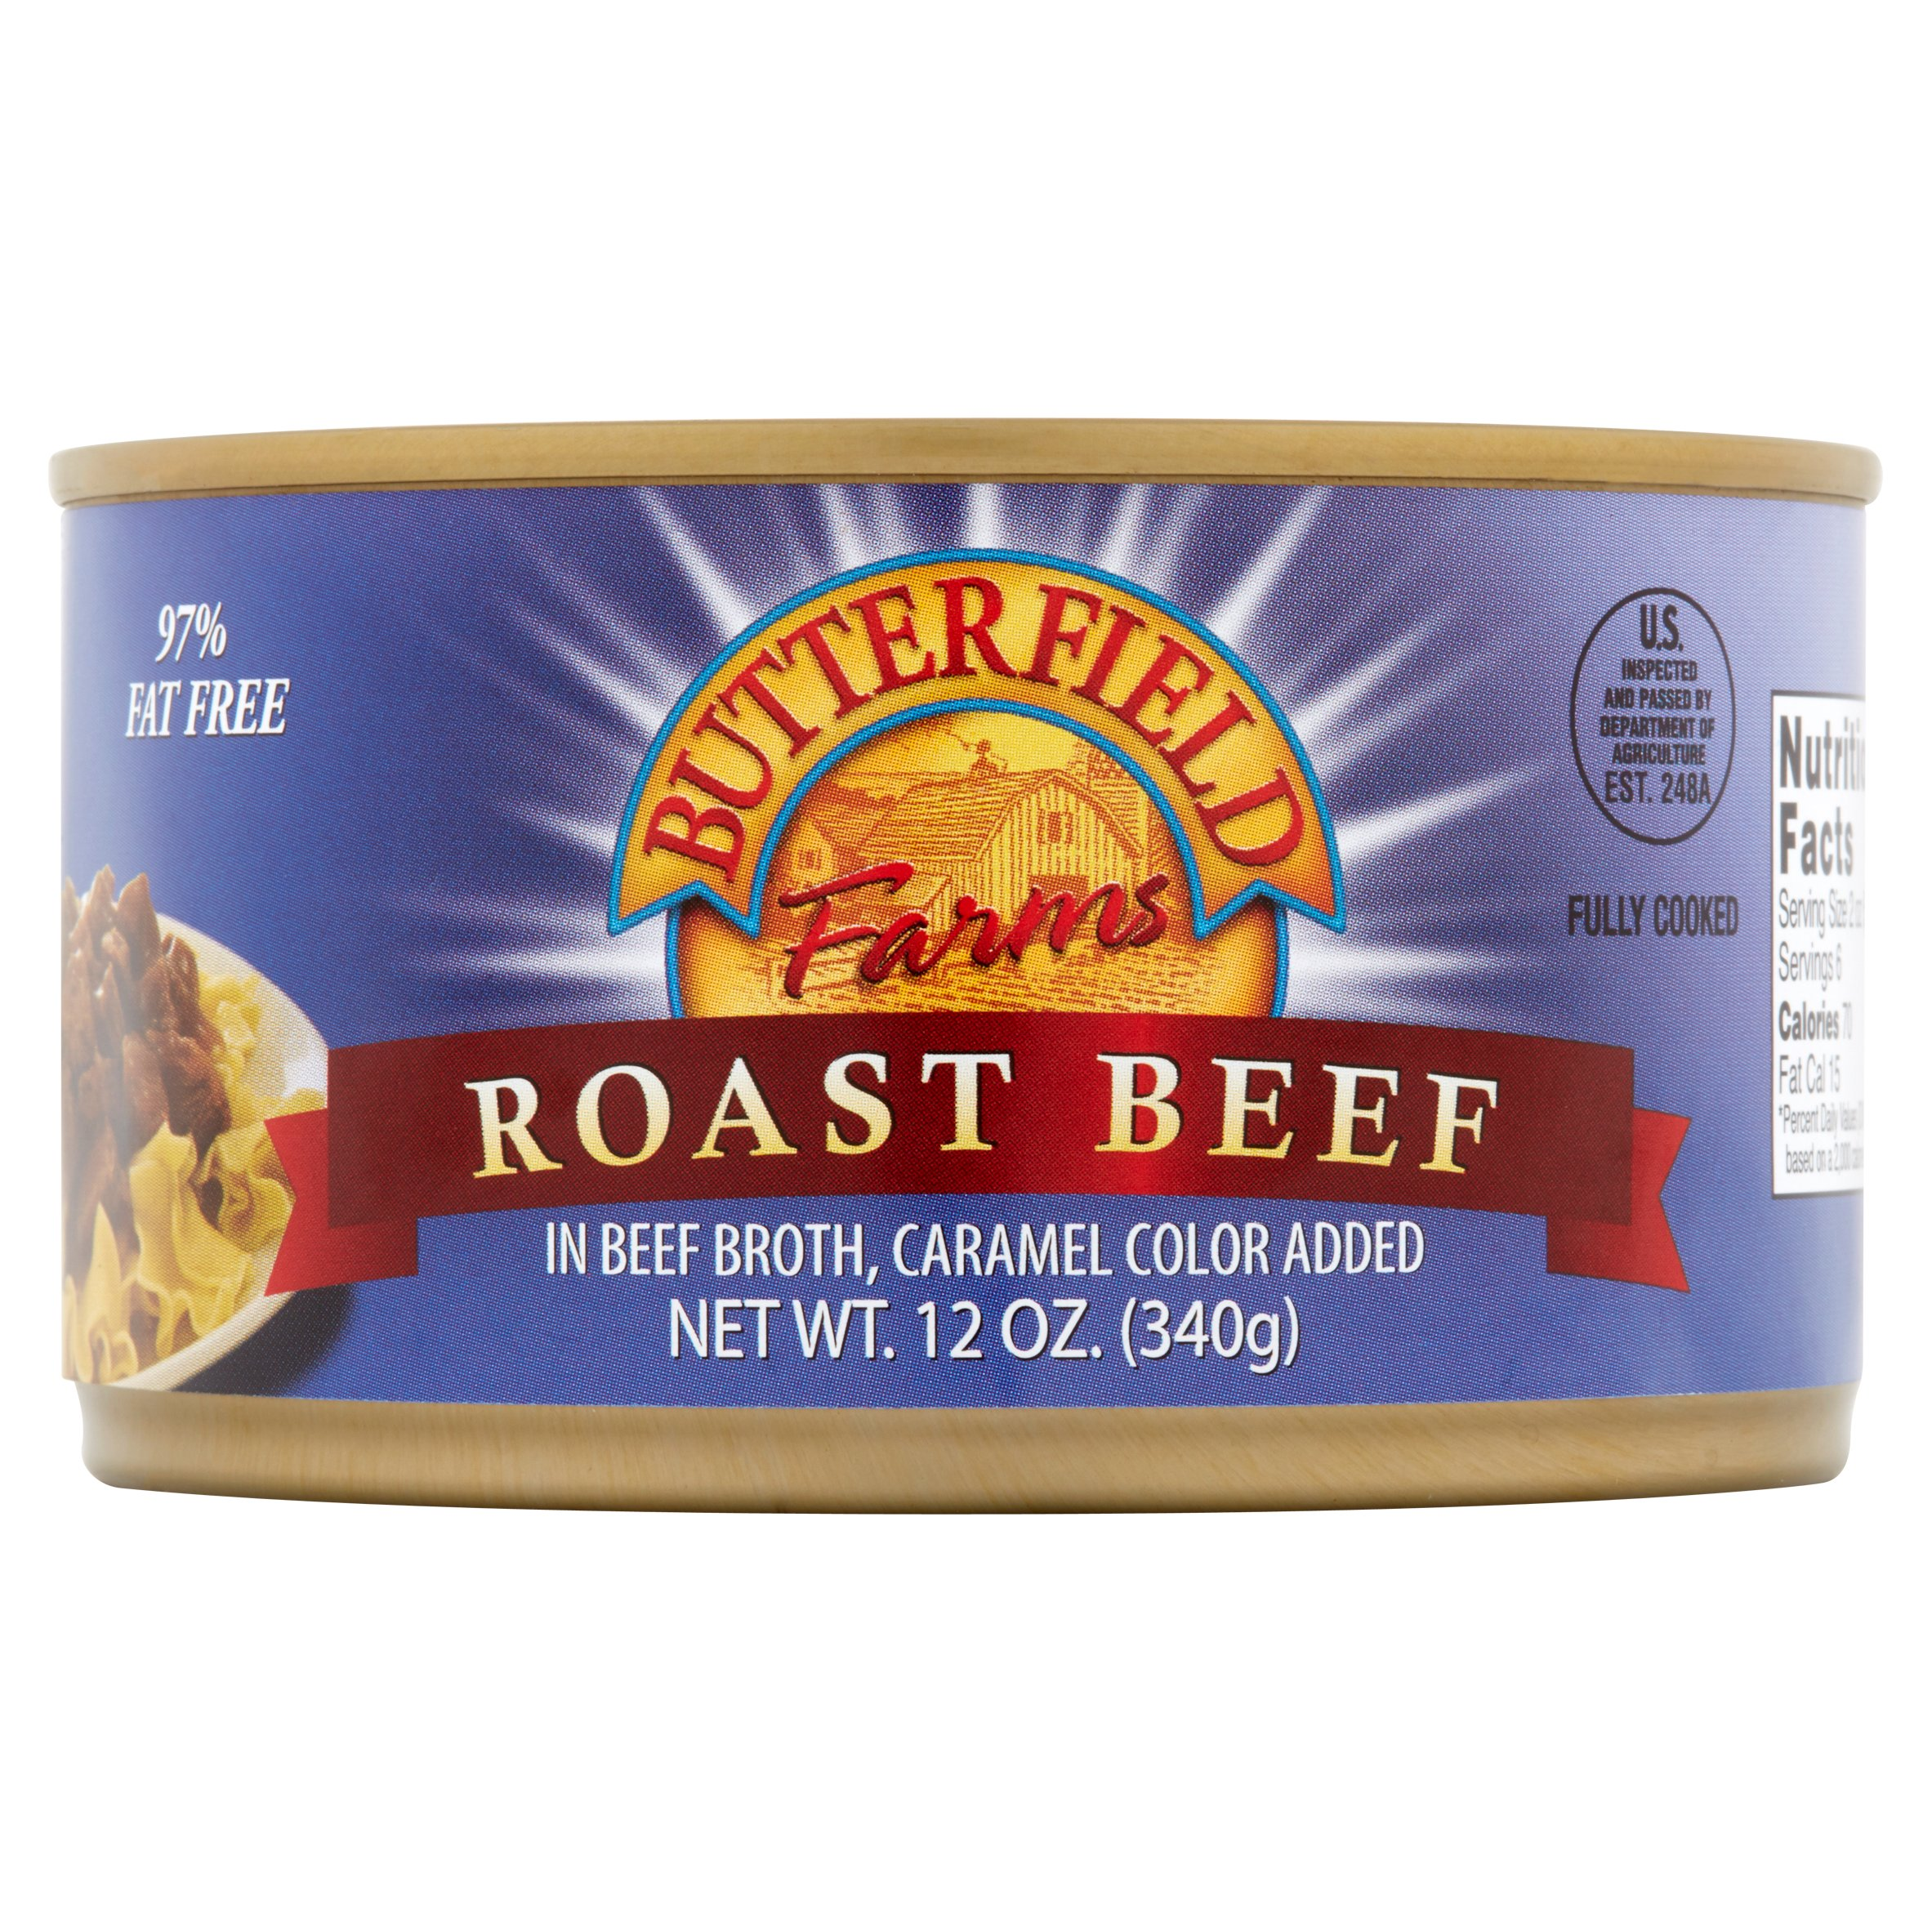 Butterfield Farms Roast Beef in Beef Broth, 12 oz by Tony Downs Foods Co.